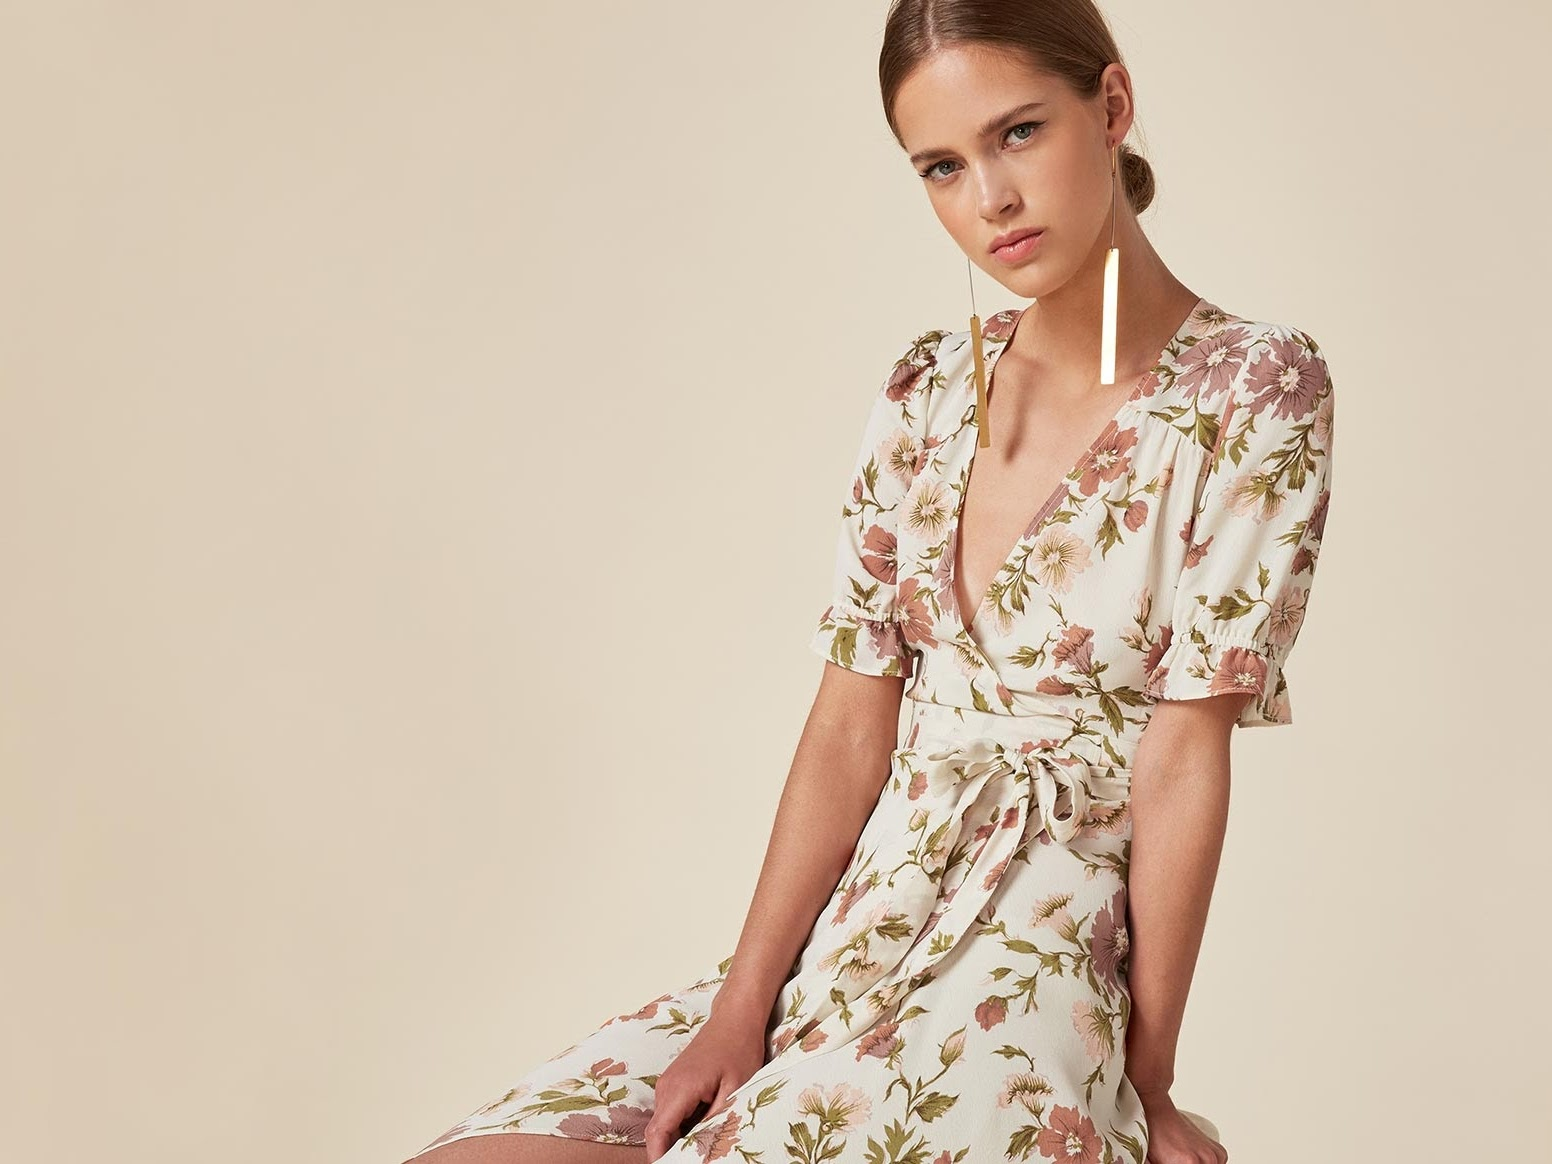 Floral maxi dress philippines fashion